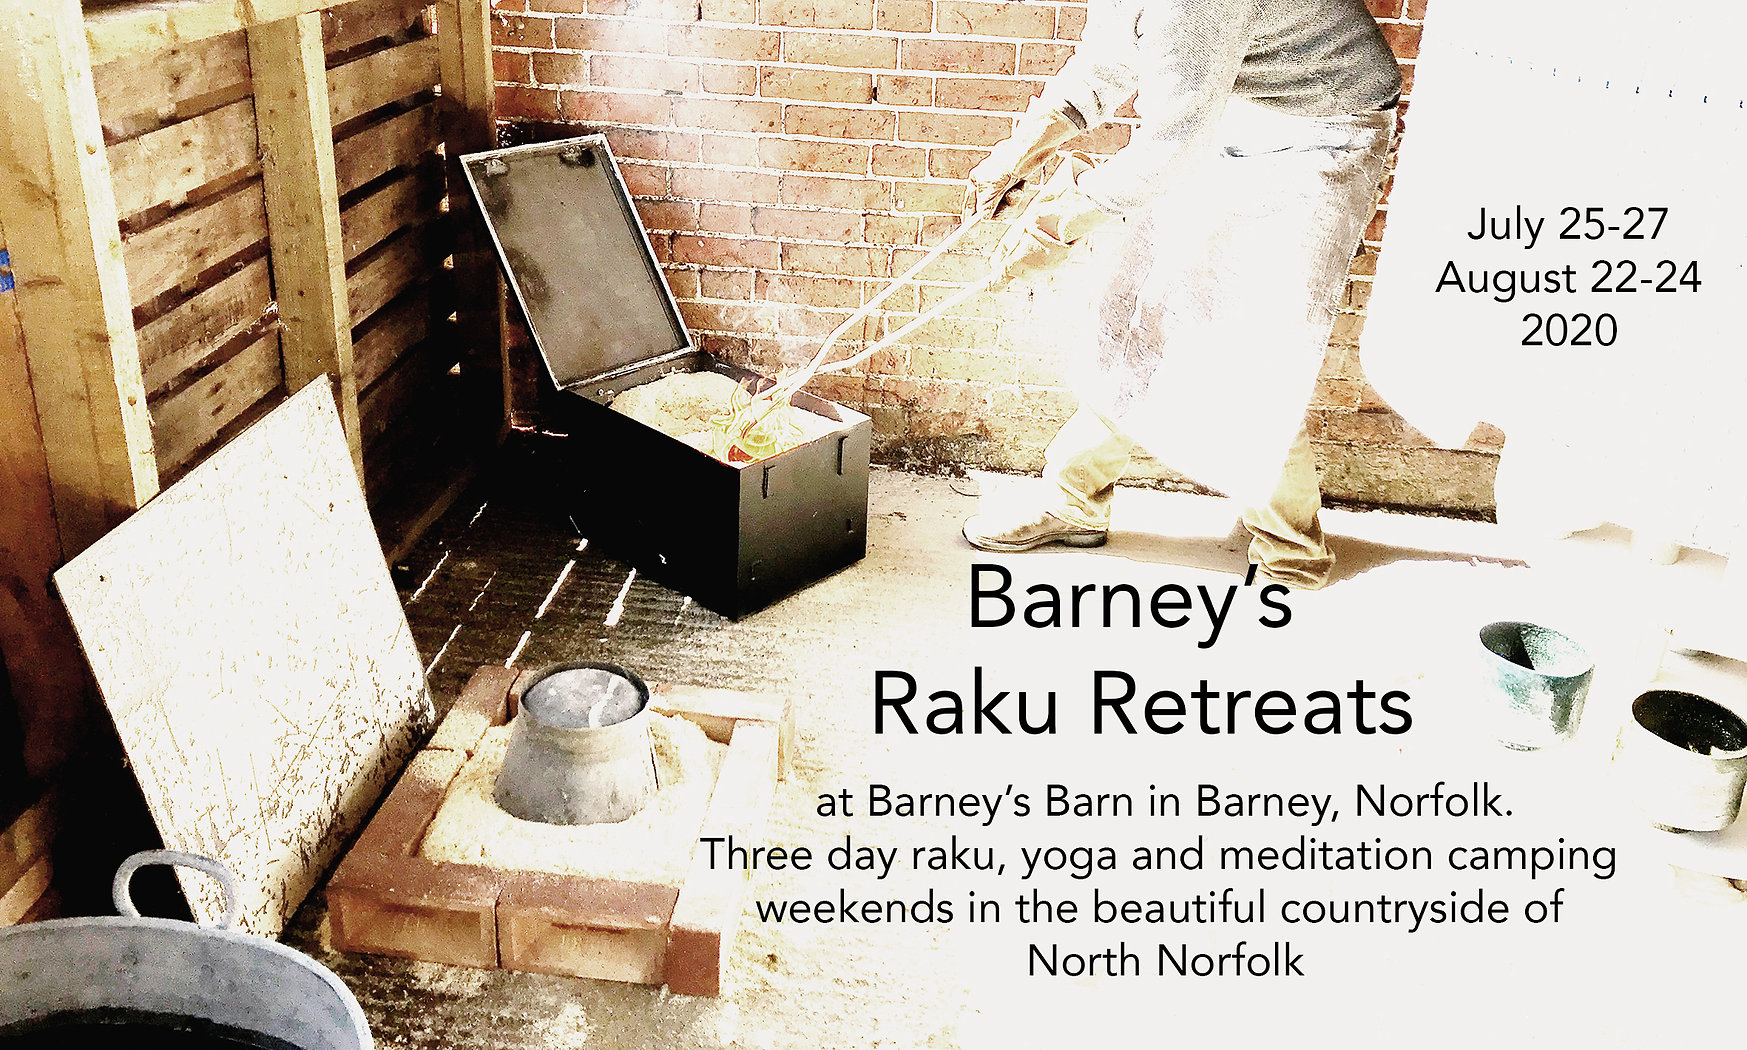 BARNEYS-RAKU-RETREAT-POSTER-2020-Web.jpg